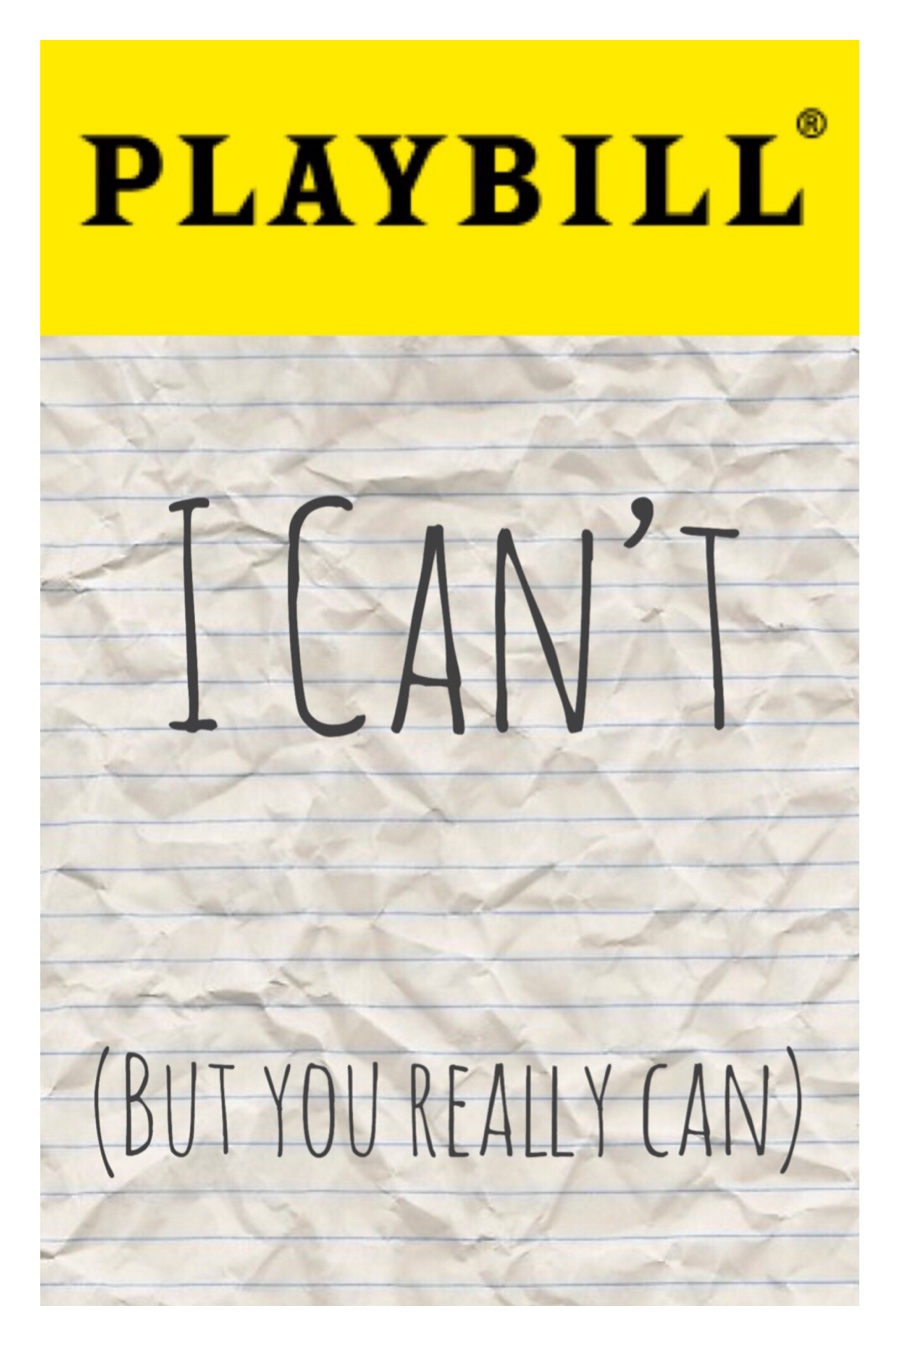 I Can't (But You Really Can)